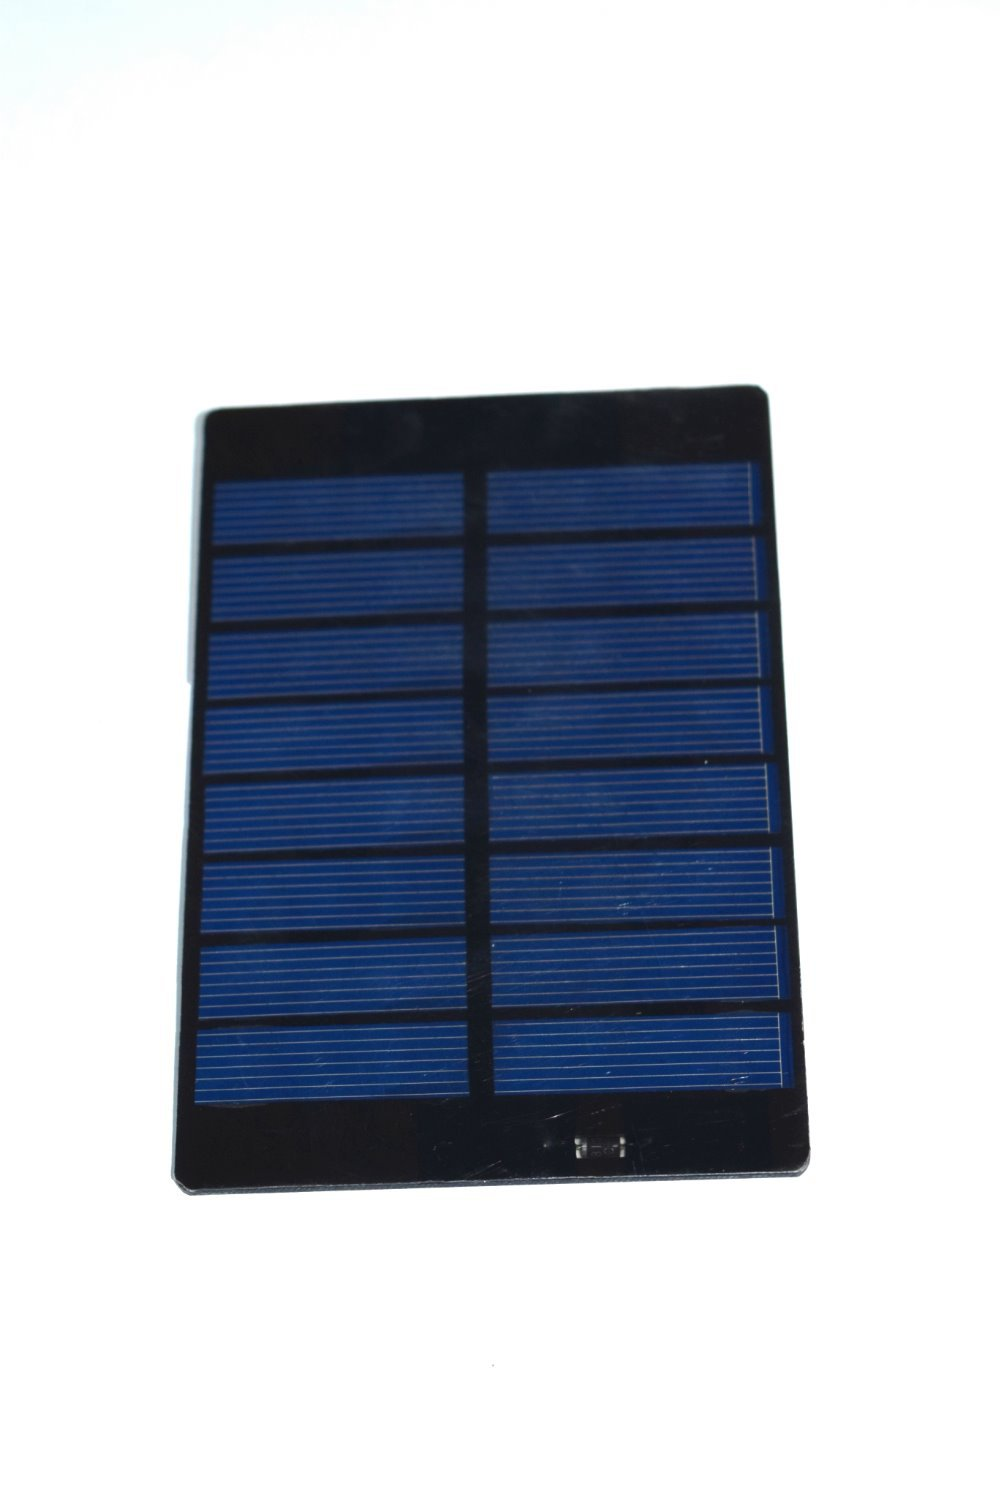 Solarparts 5pcs 4V 250mA PET laminated Solar Modules factory selling price solar cell panel system kit toy led light outdoor